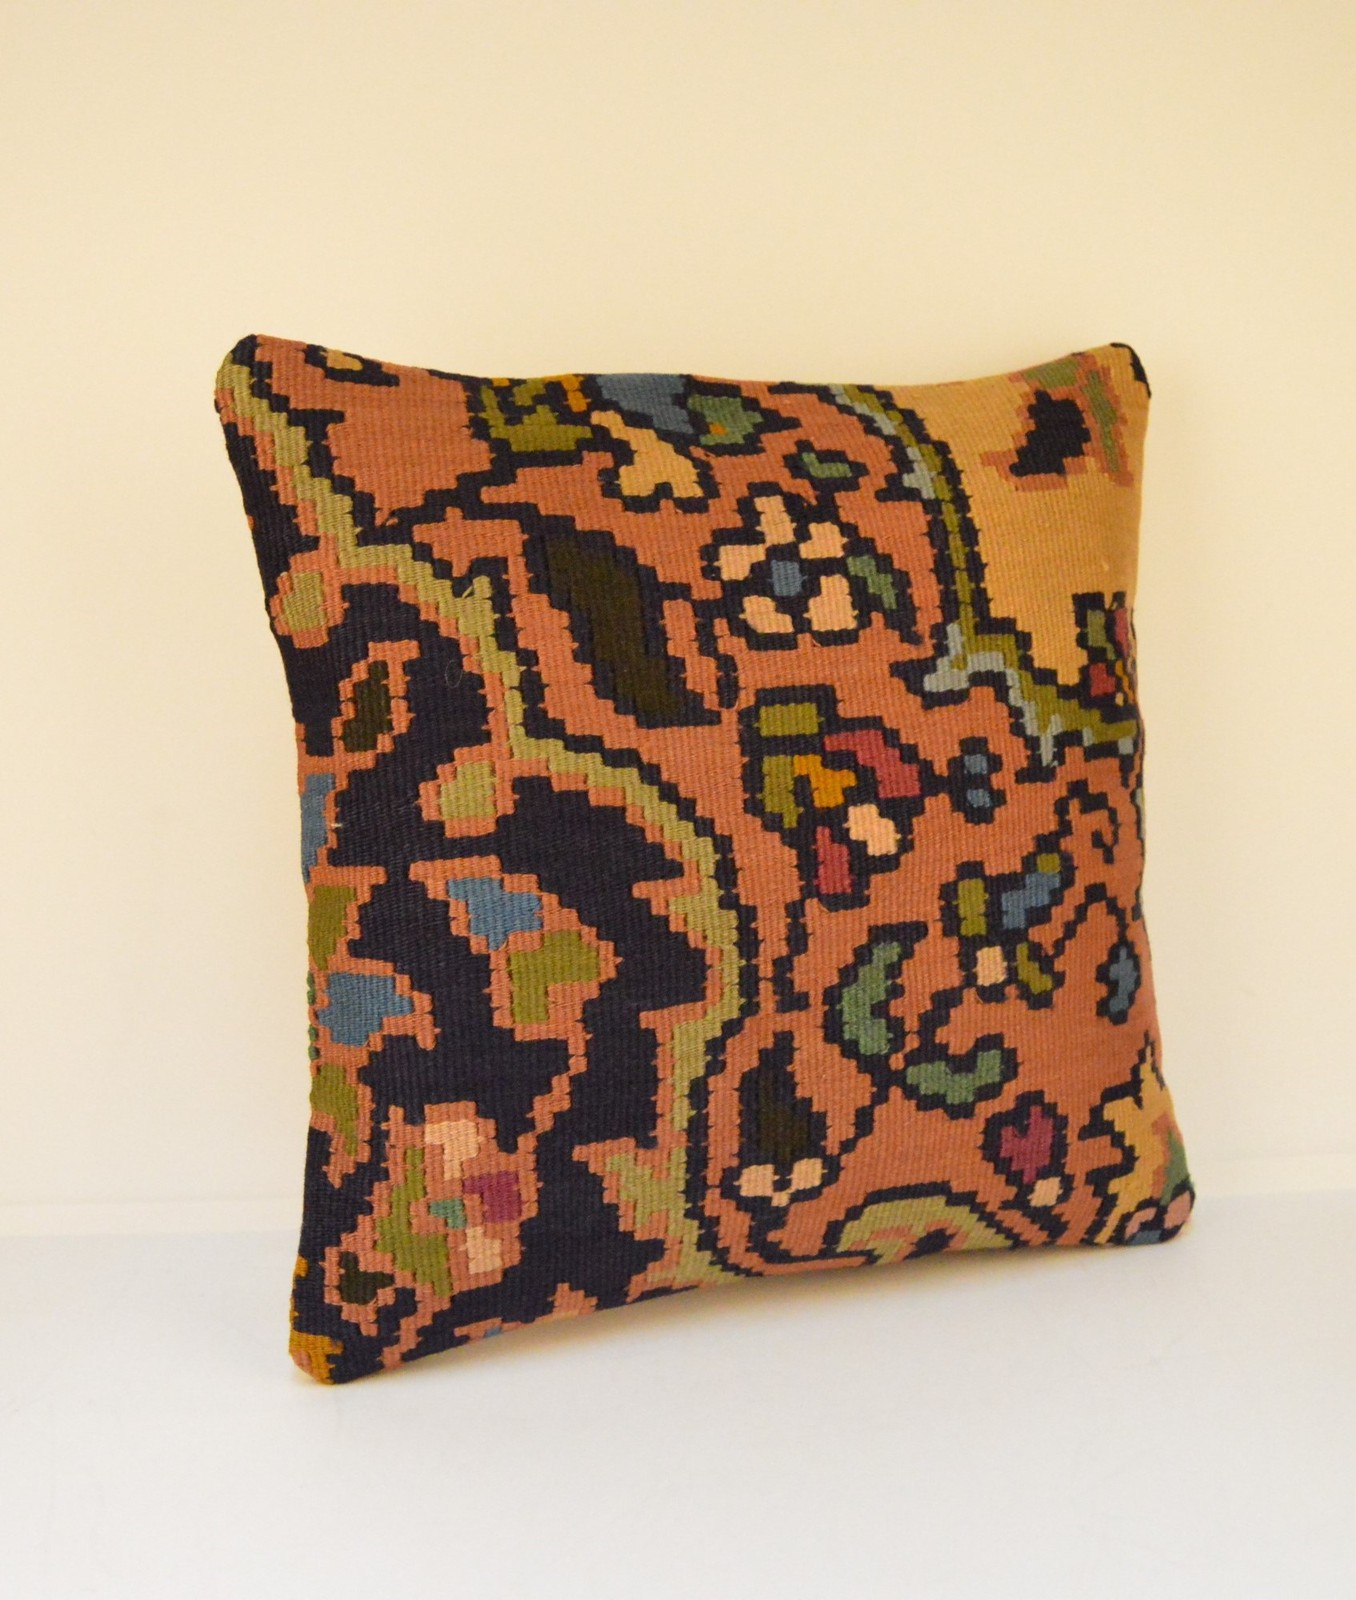 Decorative Pillows Kilim : Decorative Pillow Covers kilim pillows covers by CastawayCoveDecor on bonanza - Pillows